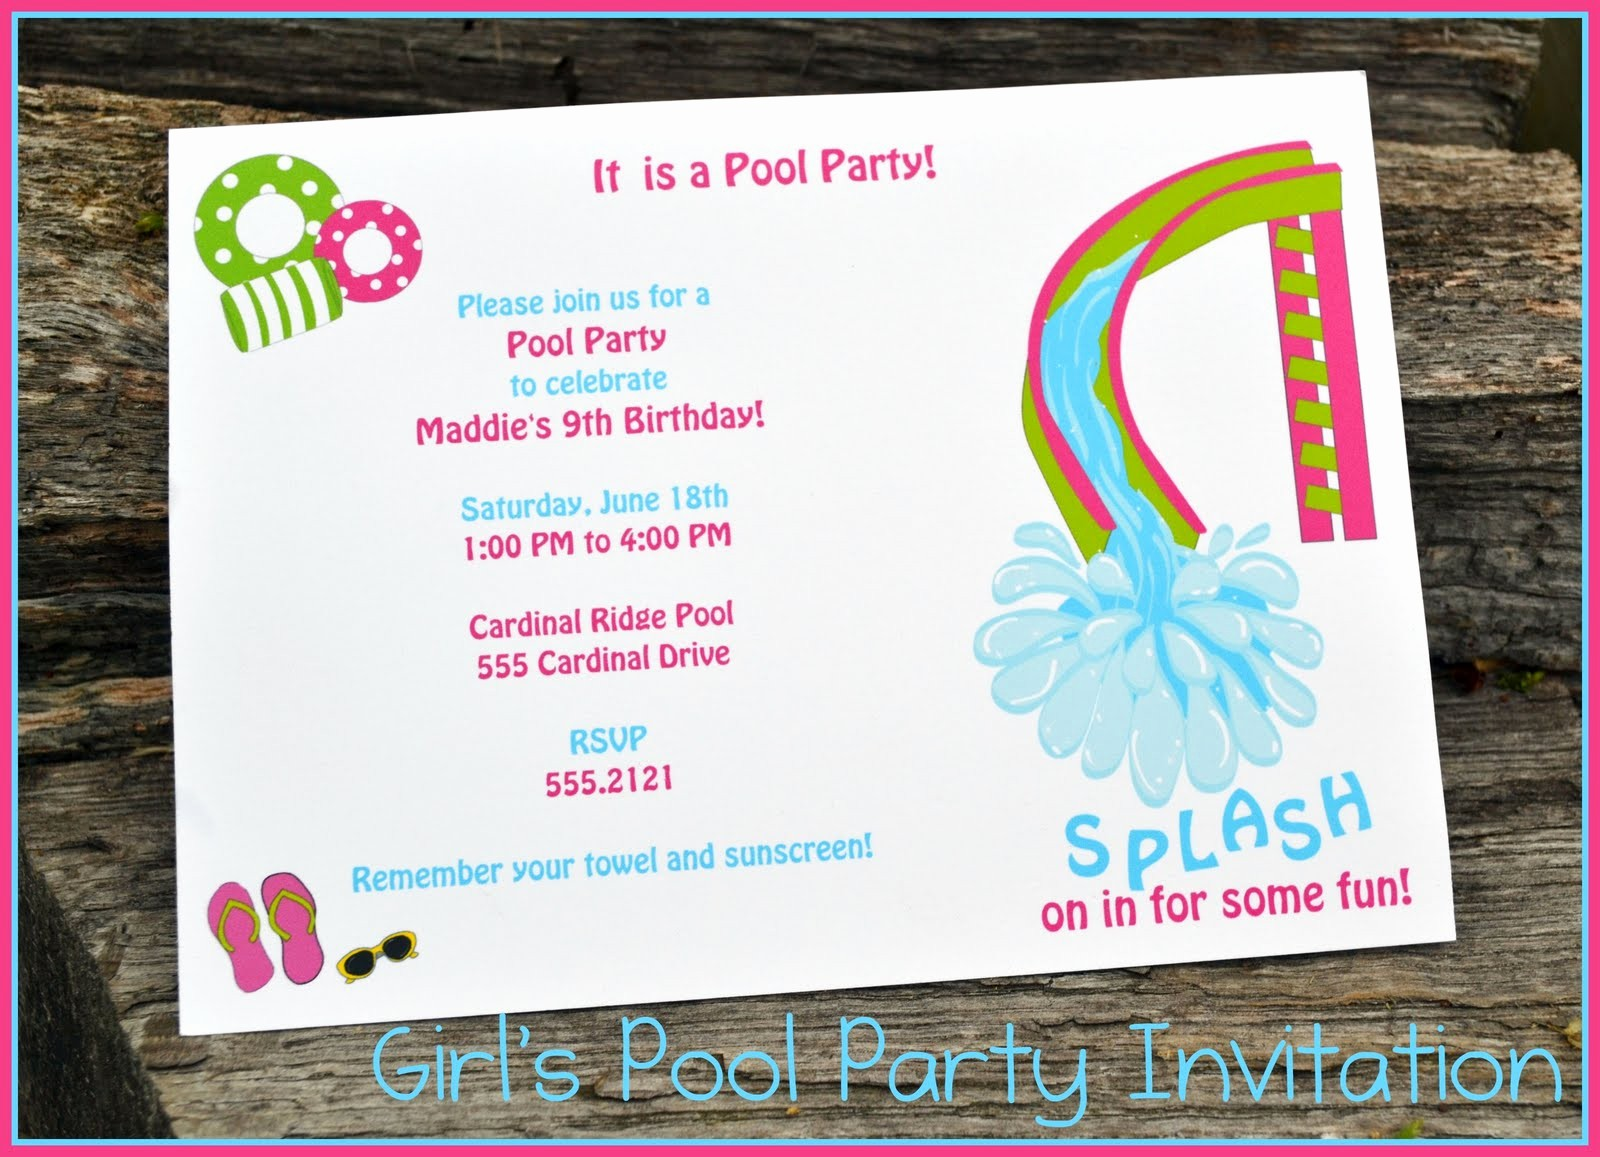 Year End Party Invitation Templates Elegant Pool Party Invitations Designs Tedxumkc Decoration Wedding